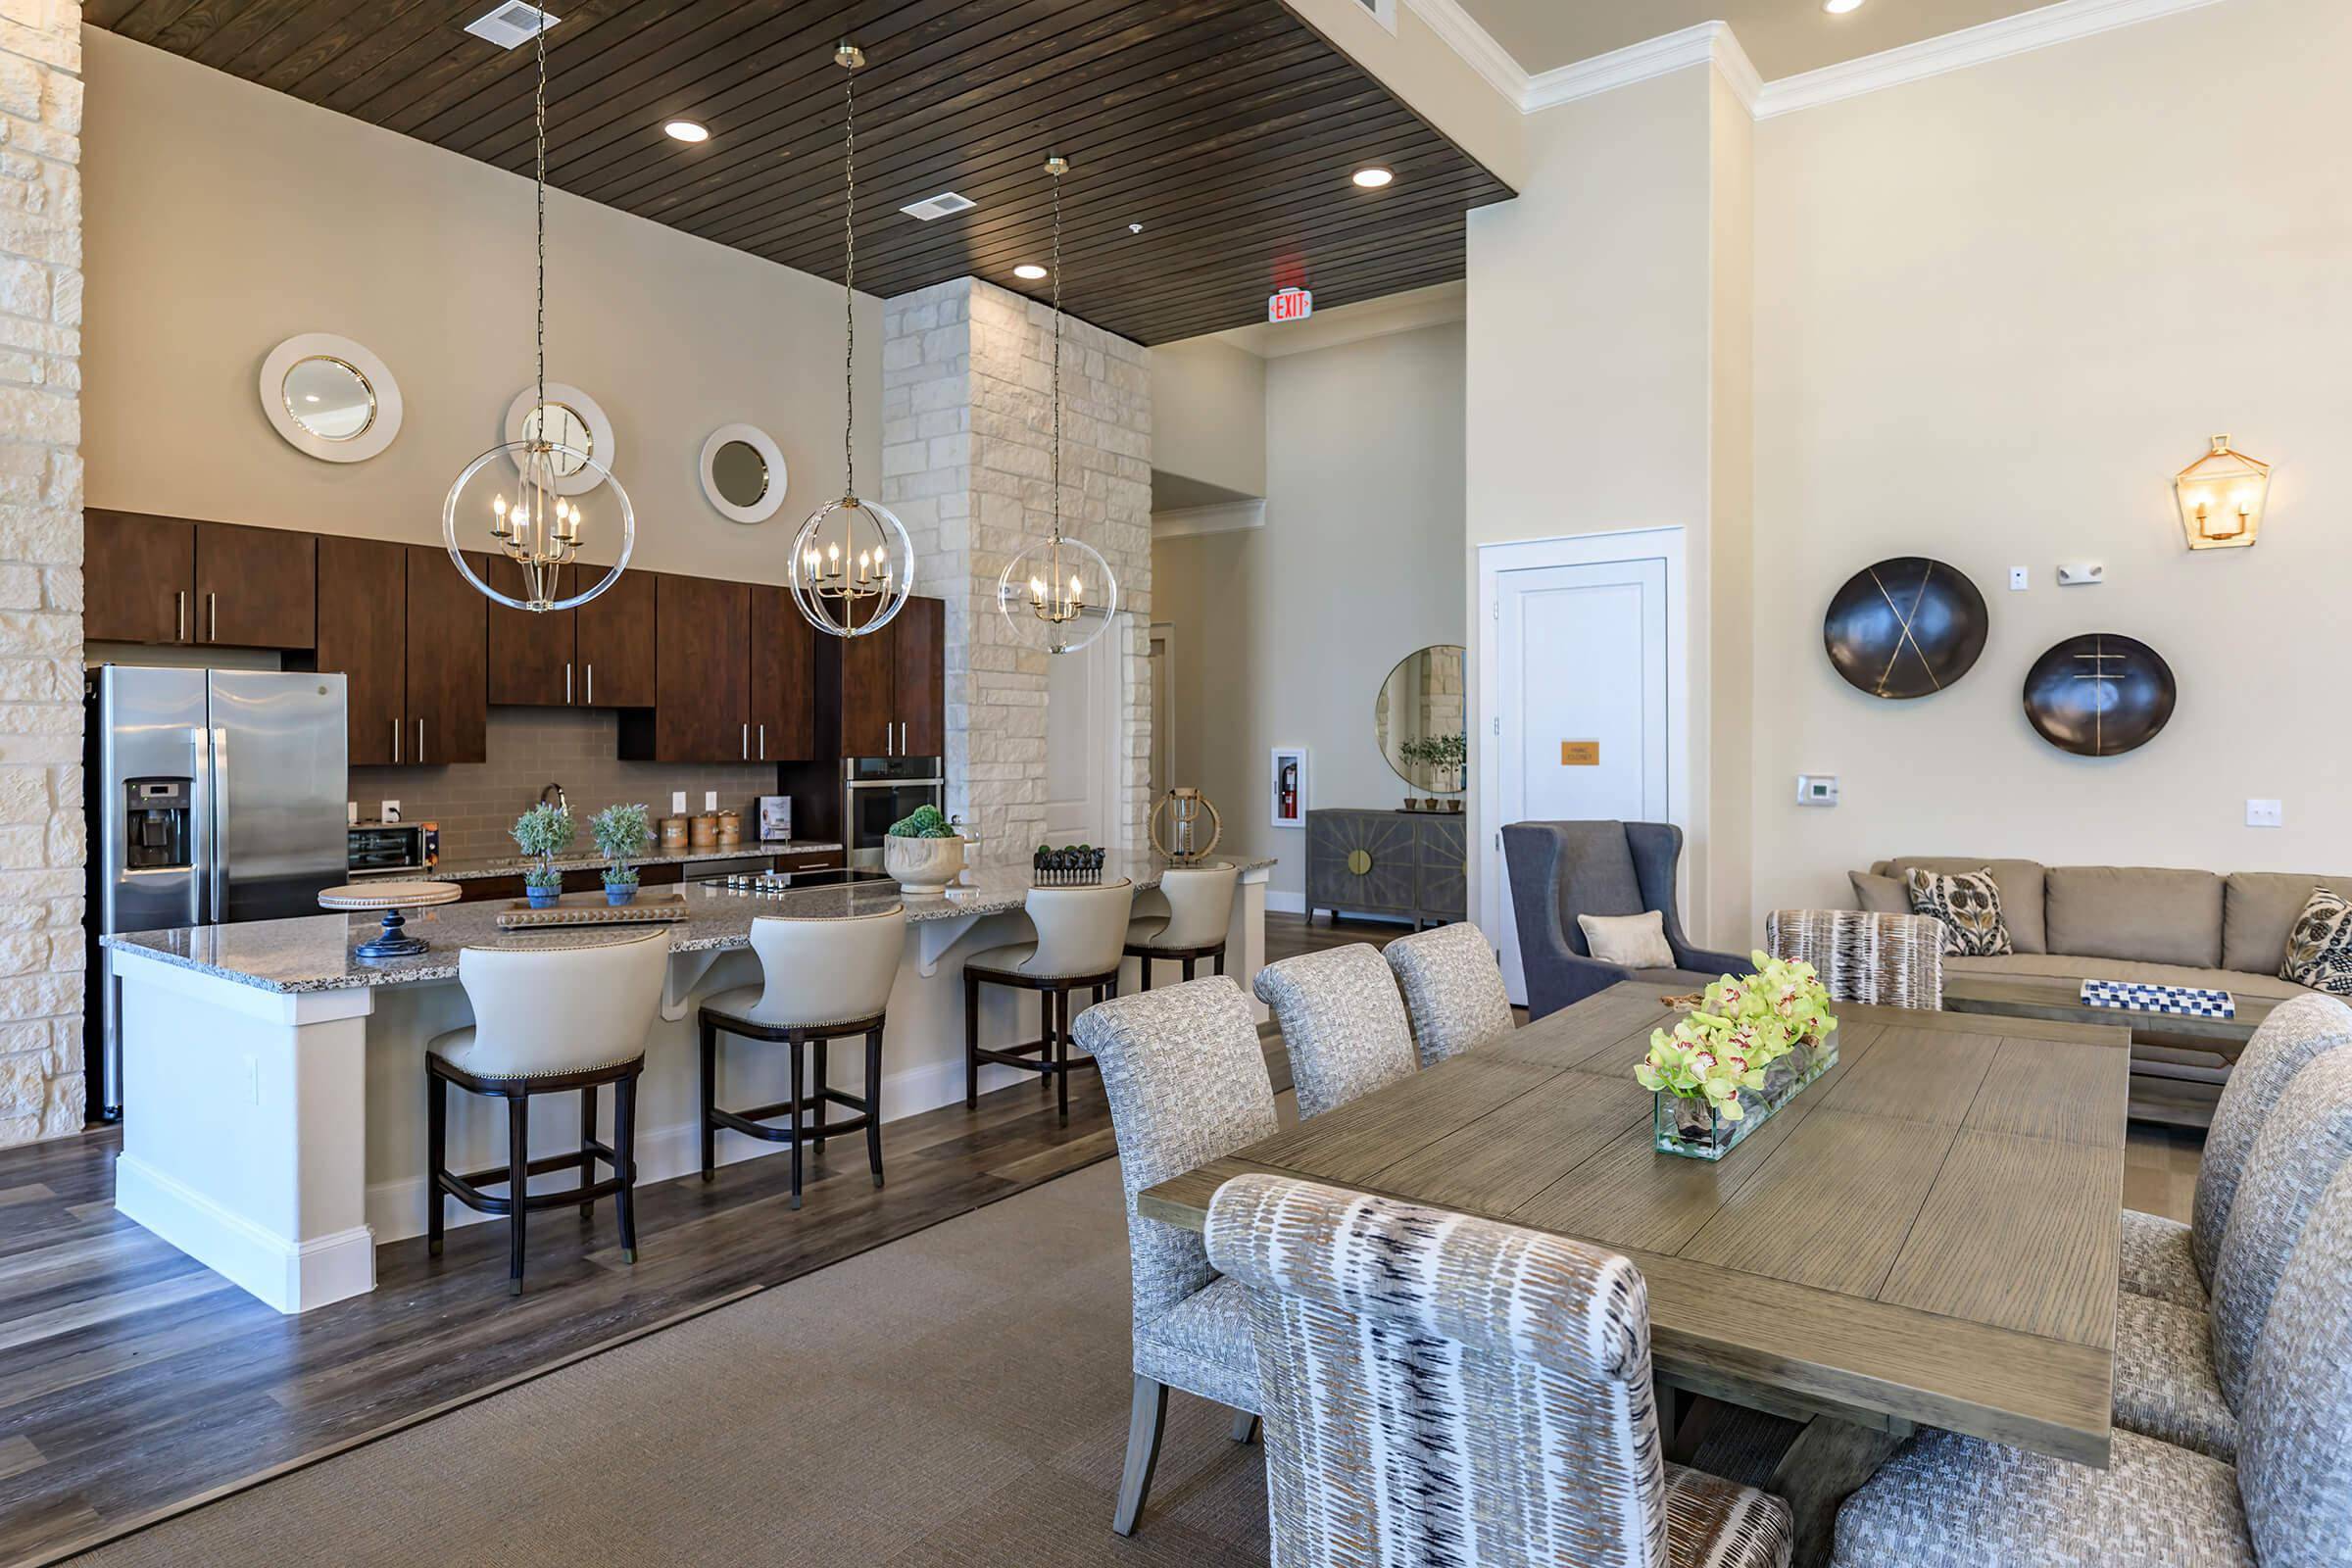 MAKE USE OF THE CLUBHOUSE KITCHEN